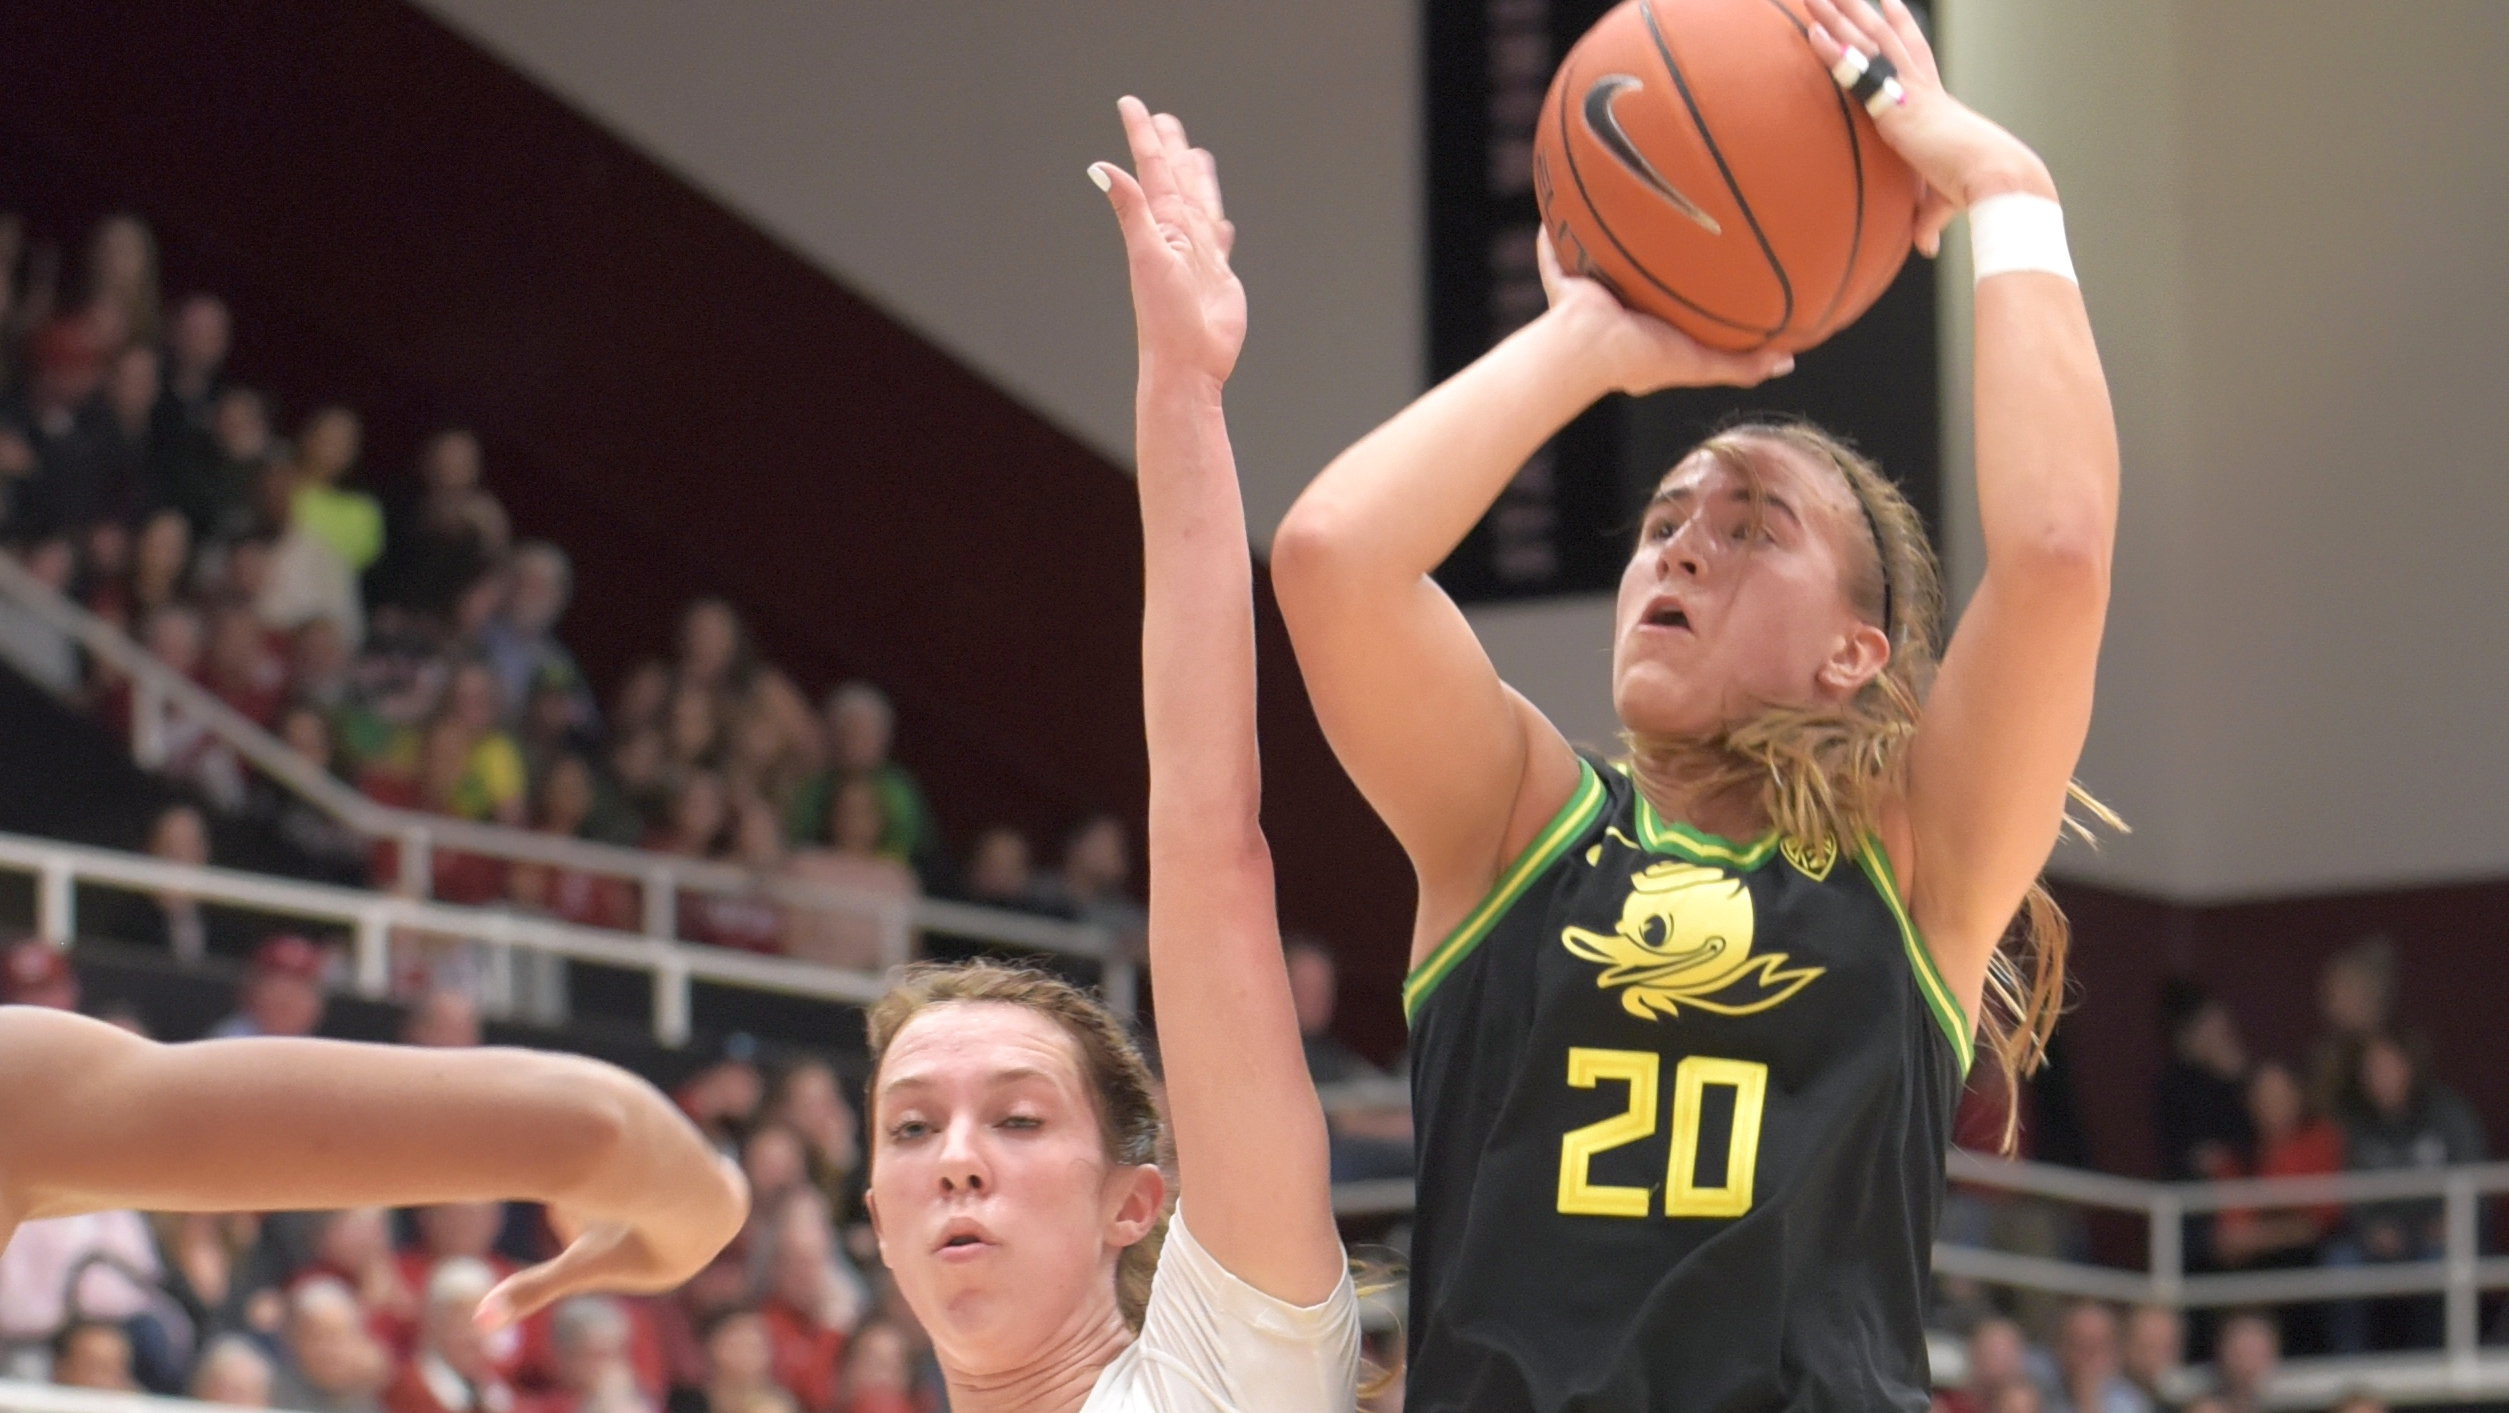 Suffering from the flu, Sabrina Ionescu hits another milestone while earning her 26th triple-double in 74-66 win over Stanford